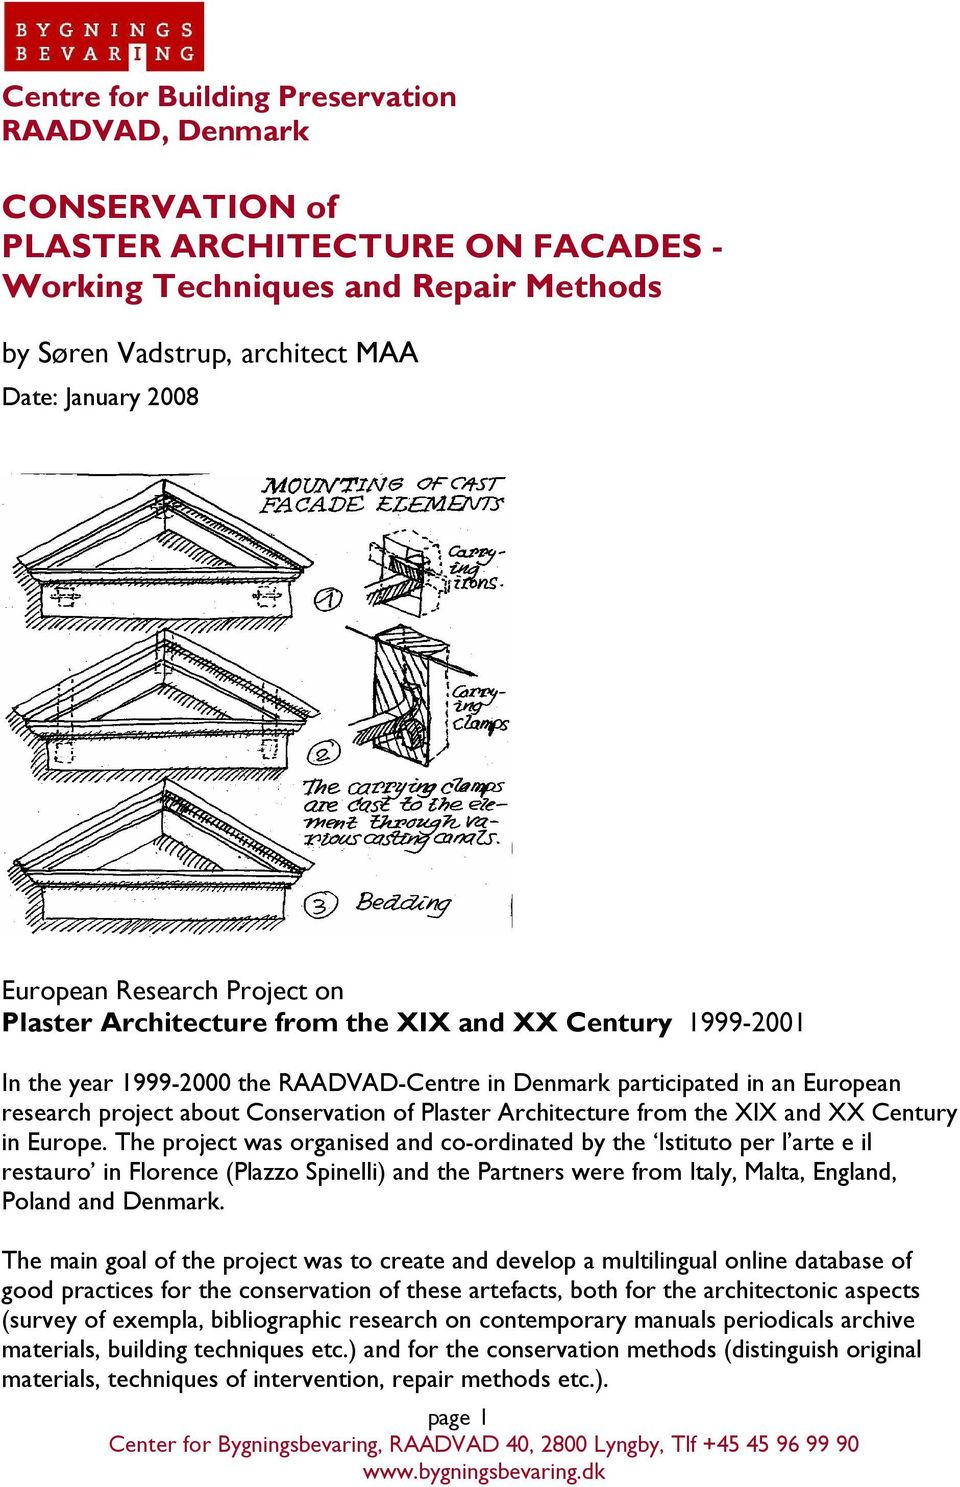 Plaster Architecture from the XIX and XX Century in Europe.